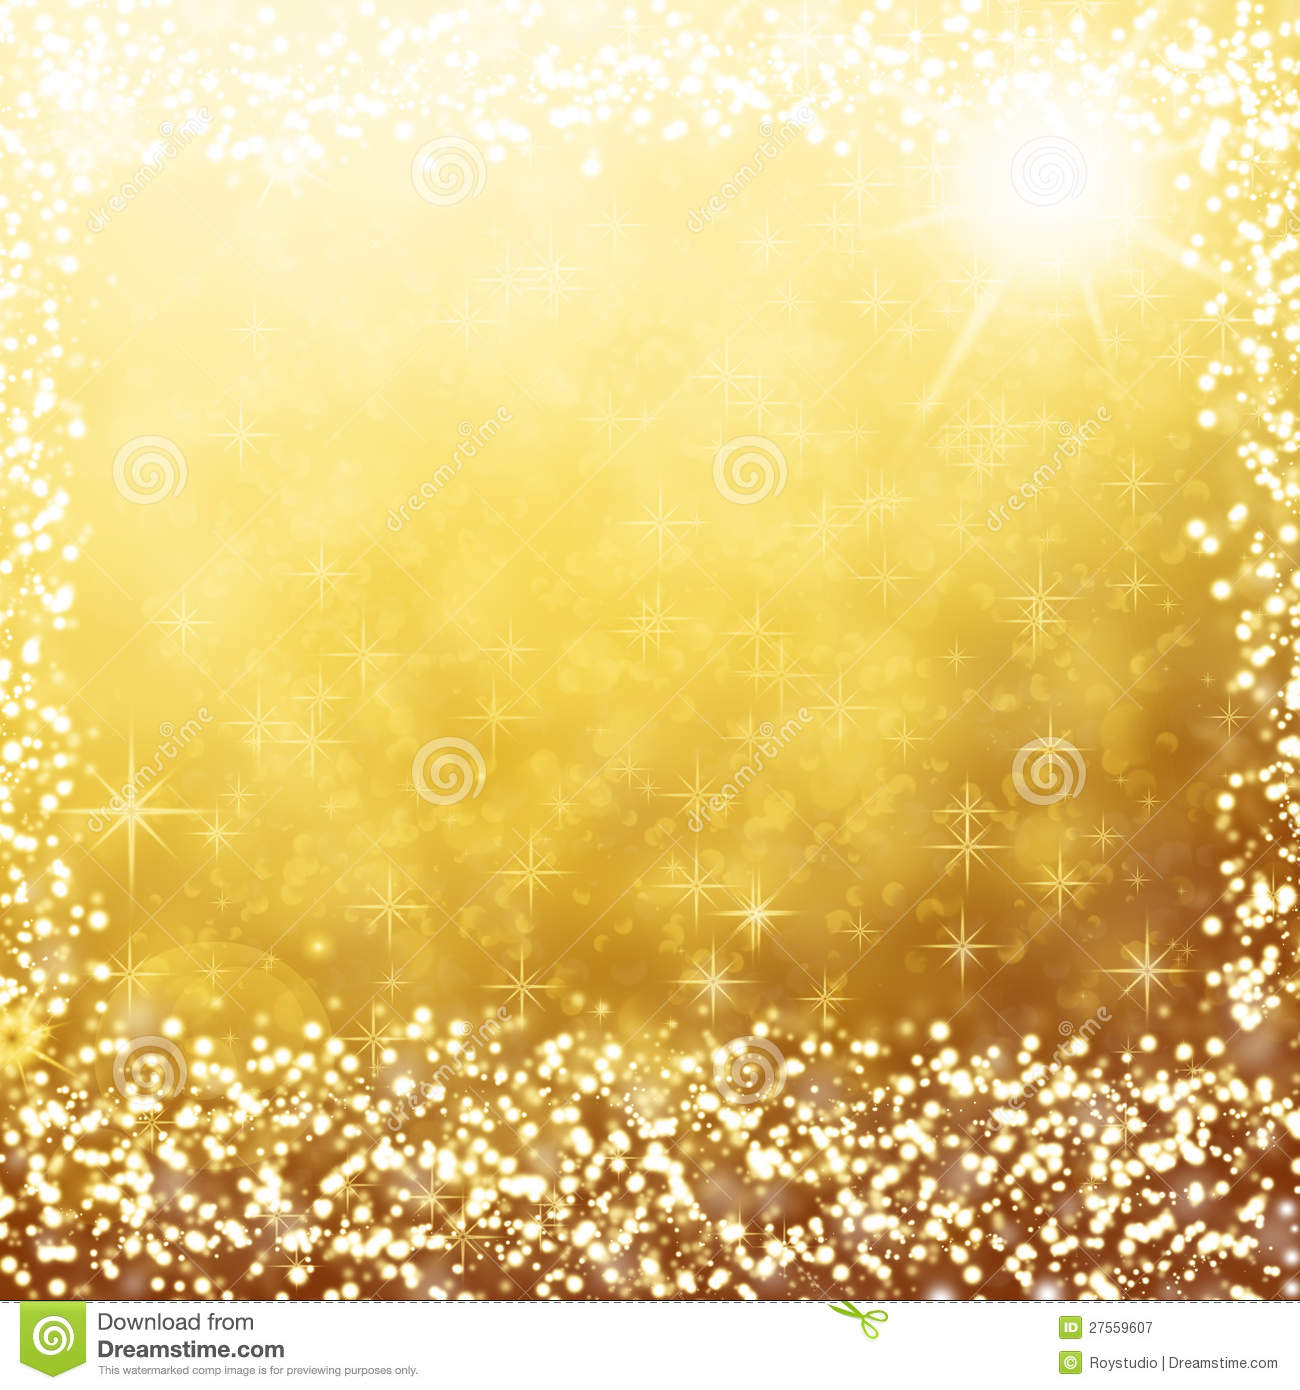 Gold Christmas Background White Lights And Stars Stock Illustration - Image: 27559607